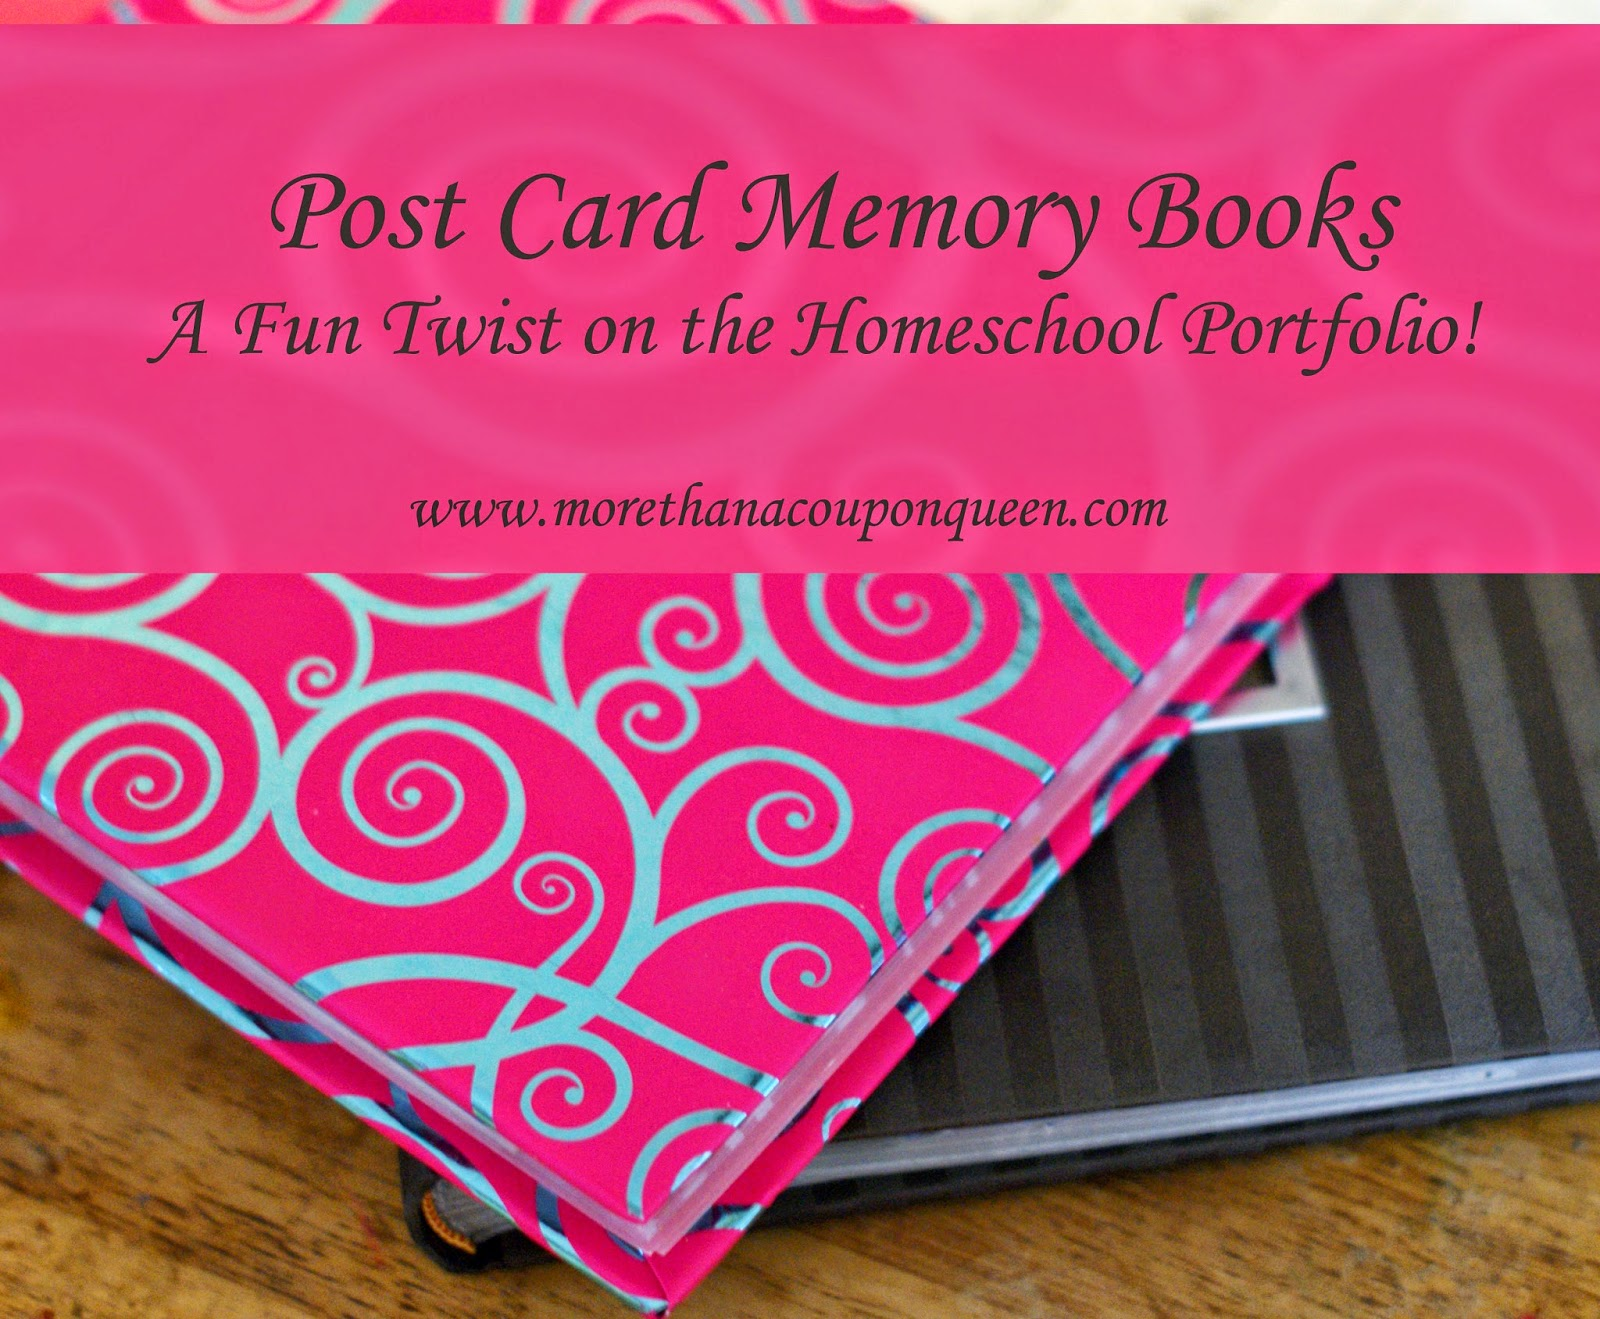 Post Card Memory Books - A Fun Twist on the Homeschool Portfolio